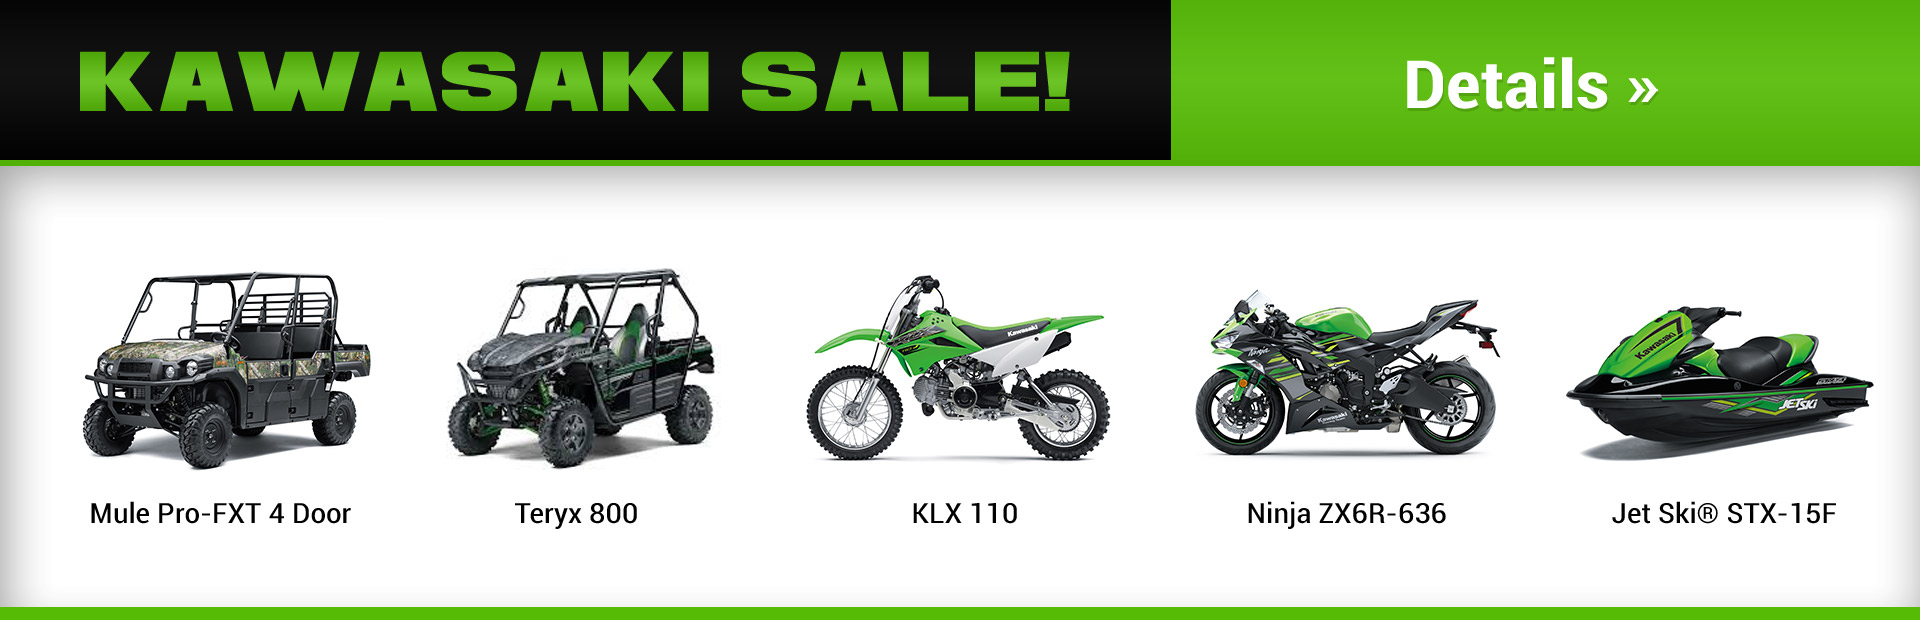 Kawasaki Sale: Click here for details.